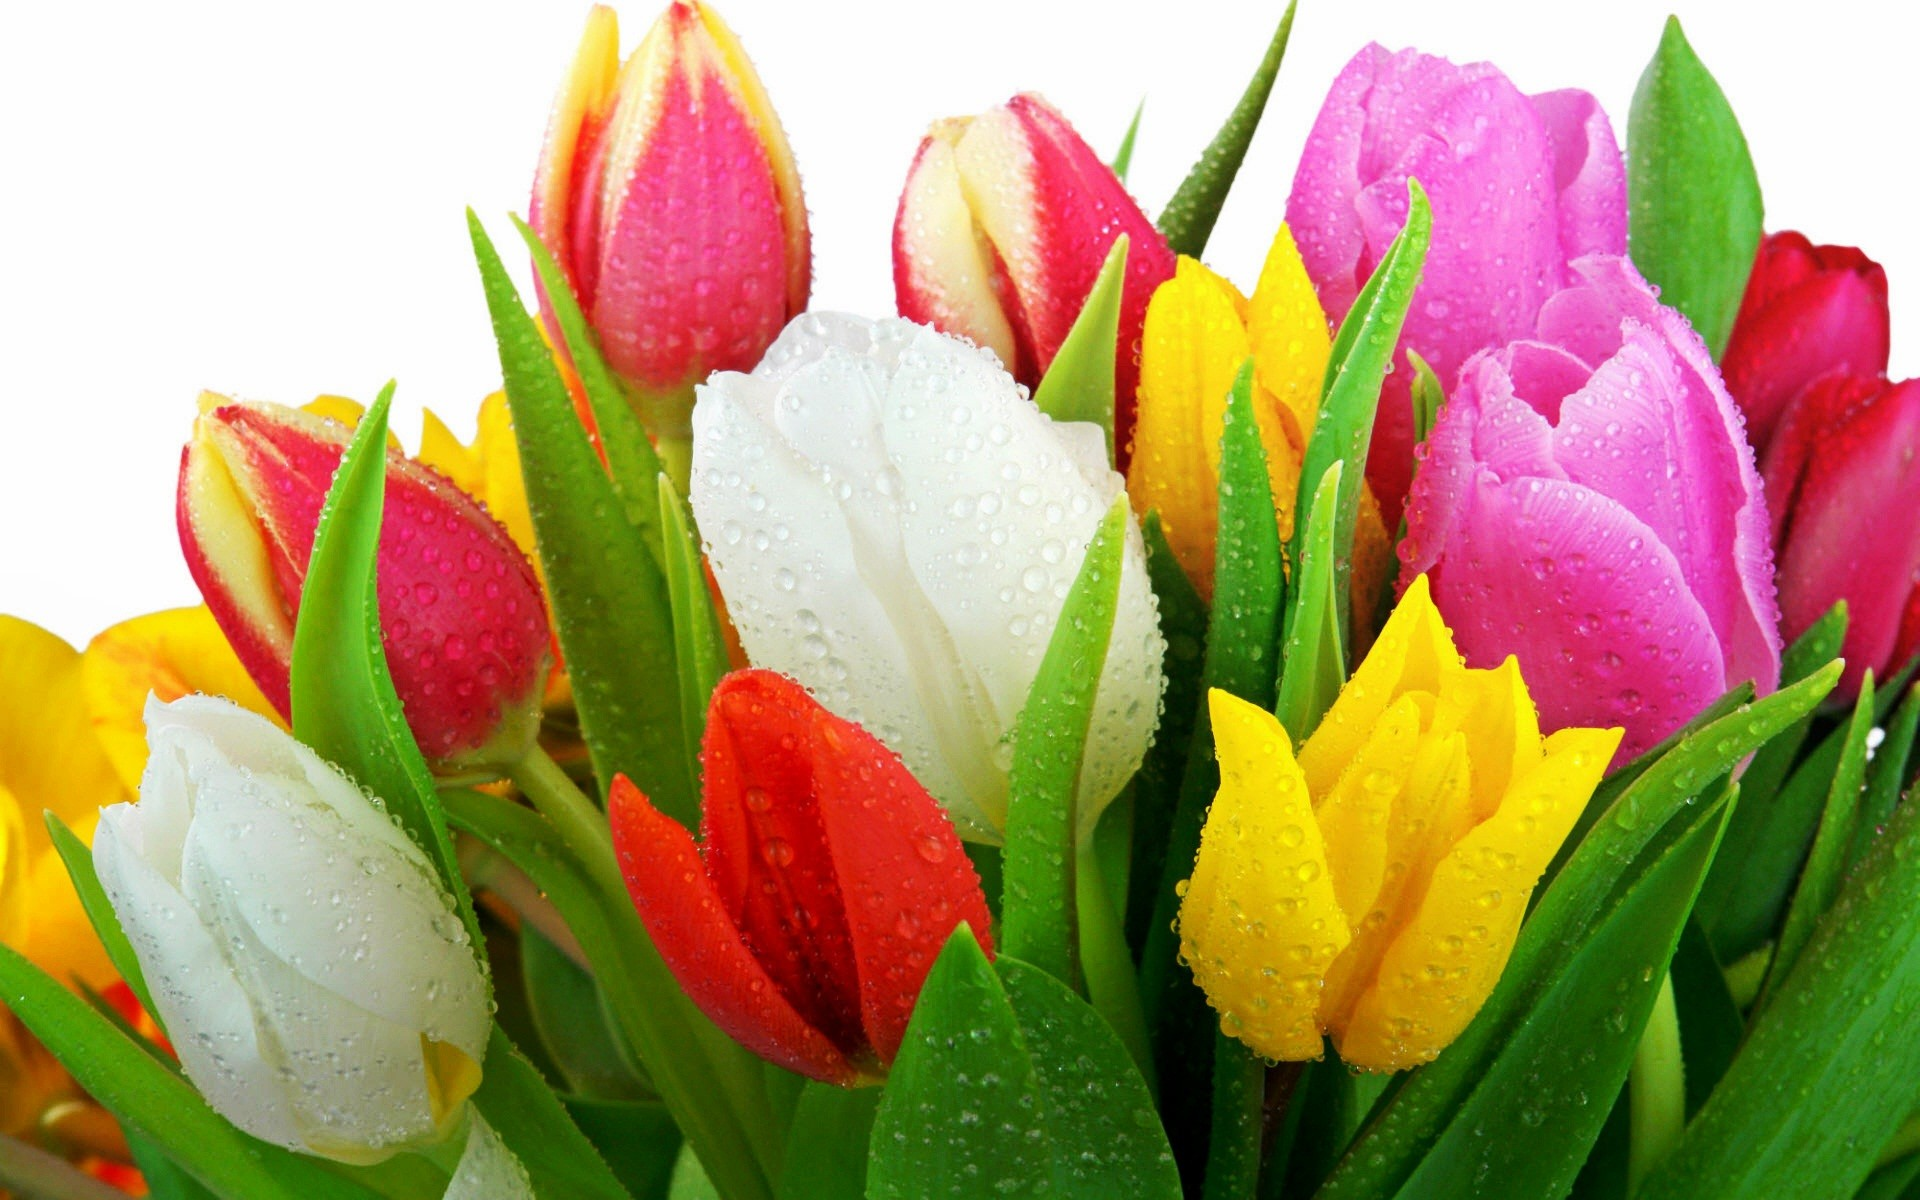 Iphone 4 3d Wallpaper Ios 7 Fresh Tulips Wallpapers Hd Wallpapers Id 8850